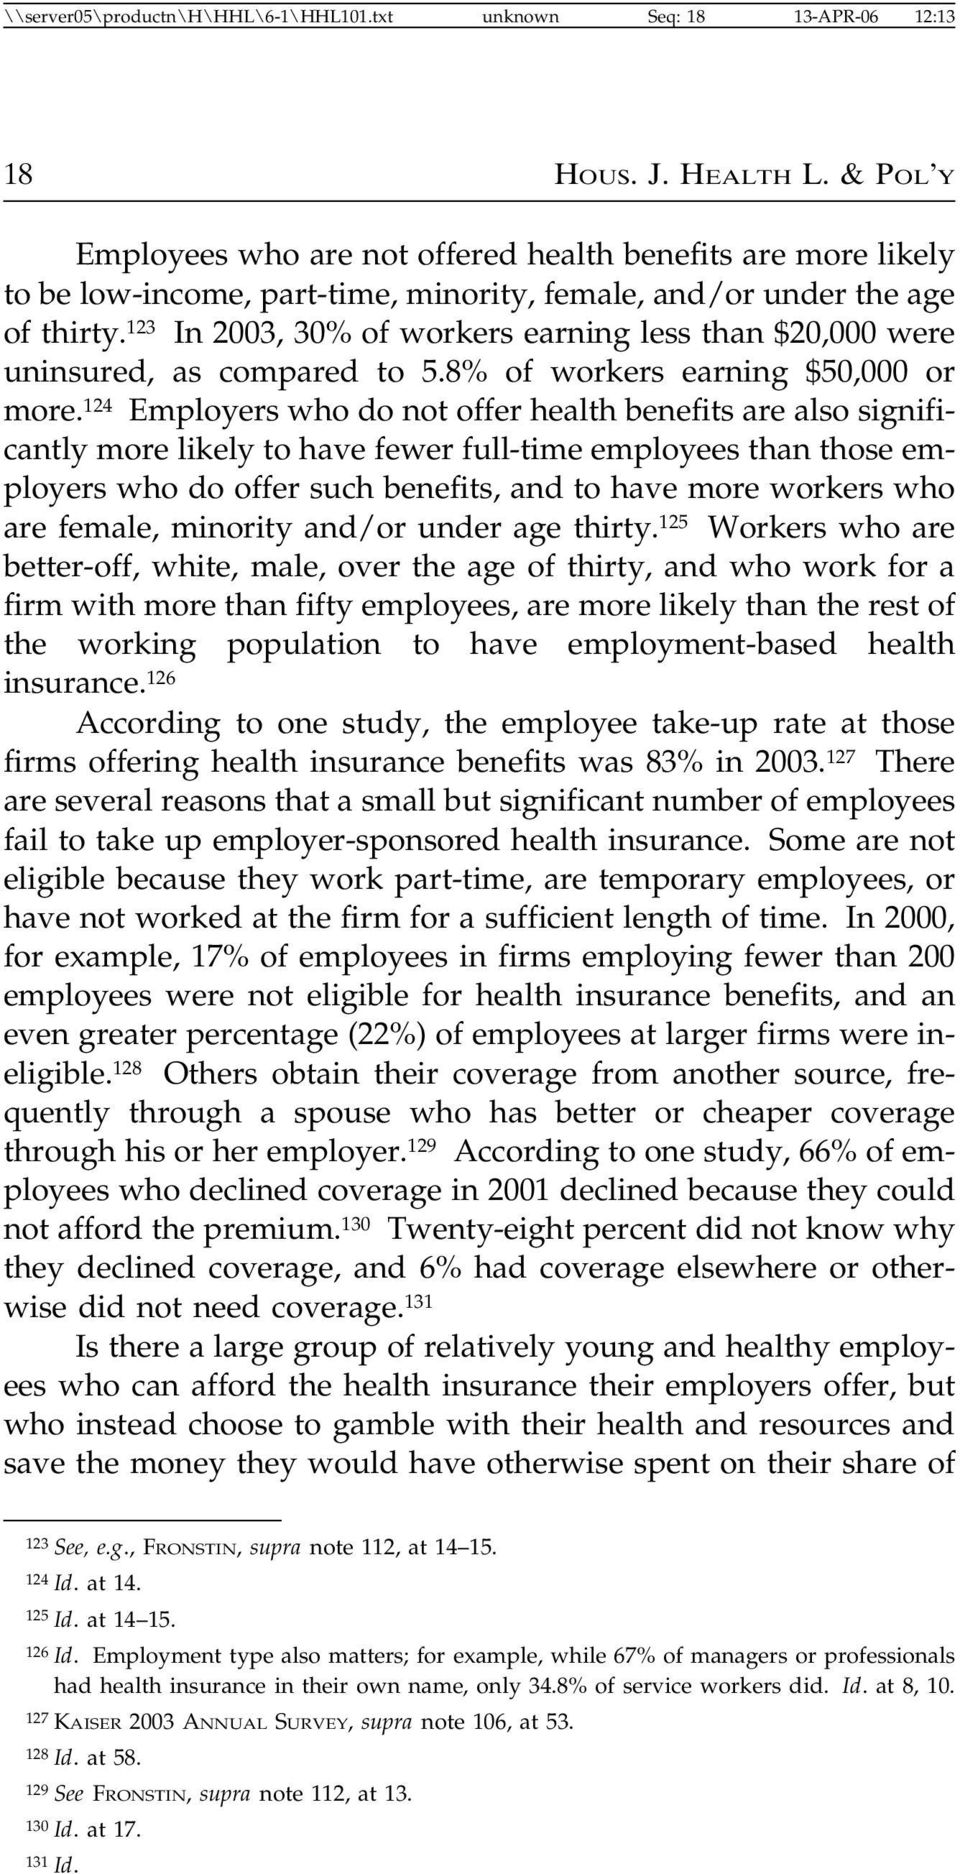 123 In 2003, 30% of workers earning less than $20,000 were uninsured, as compared to 5.8% of workers earning $50,000 or more.